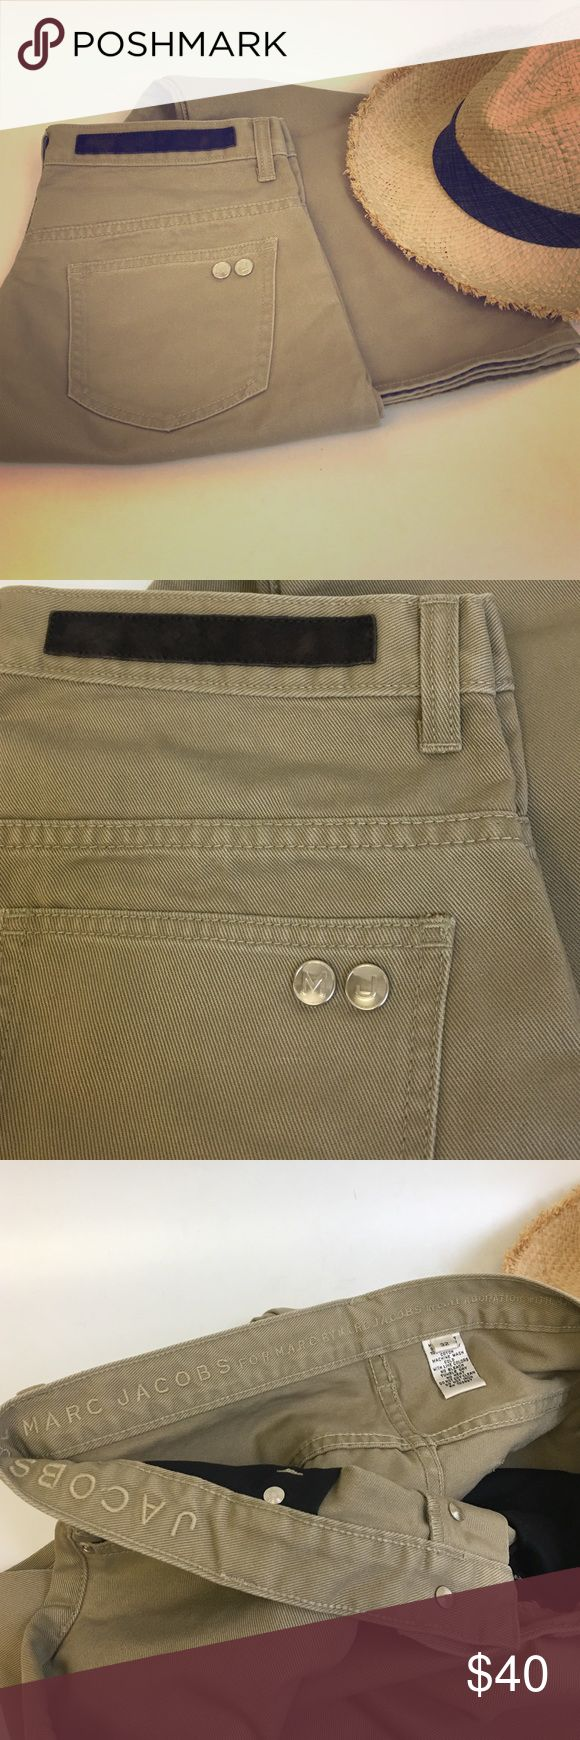 Marc Jacobs Cotton Twill Jeans Khaki Marc Jacobs Slim Straight Leg Khaki Jeans Pants. NWOT. 32 waist, inseam is long but can be shortened no problem at your local dry cleaner. MJ is known for their long inseams. 32x38. Nice hardware details :) Marc by Marc Jacobs Jeans Slim Straight